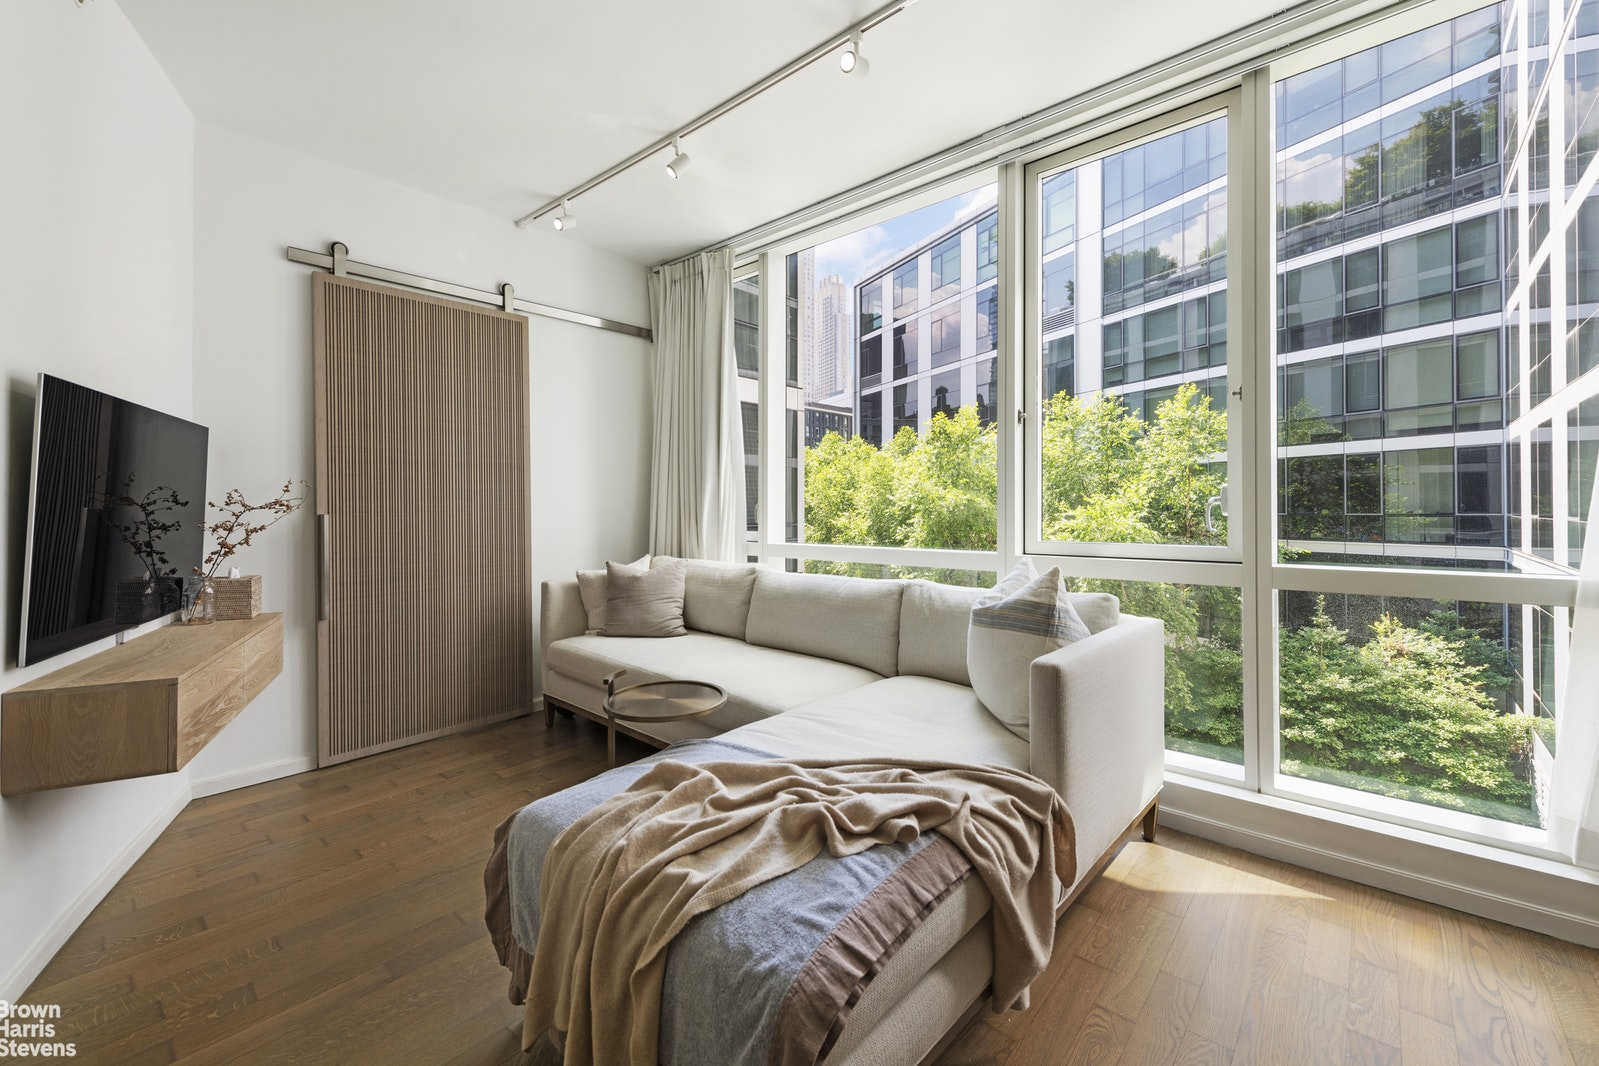 Welcome home to residence 3U at 200 Chambers Street. This large one bedroom home is located in a prime full service Tribeca condo and features hardwood floors throughout, high ceilings and floor-to-ceiling windows that run the entire length of the apartment and allow for beautiful natural light and tree-top views of the building's perfectly manicured garden. 3U at 200 Chambers Street is ideally situated with a bright southern exposure looking out onto the landscaped garden, which also ensures a pin-drop quiet environment. Residence 3U includes two large walk-in-closets and an additional closet for all of your storage needs. The kitchen is outfitted with Basaltina lava stone countertops and premium stainless steel appliances from Viking, Subzero and Bosch. The bathroom features sleek custom cabinetry and calacatta marble tiling paired with premium fixtures and fittings. Amenities at 200 Chambers Street include: a 24 hour doorman, concierge services, 24 hour fitness center, sky-lit indoor pool, laundry on every floor, resident's lounge, a landscaped roof-top terrace, children's playroom and a waterfall courtyard garden. 200 Chambers Street provides convenient access to the very best of Tribeca including Whole Foods, Soul Cycle, The Palm Steakhouse and much more! Located across the street from beautiful Washington Market Park and the Wednesday Green Market, and minutes from some of Tribeca's finest shops and restaurants and the Hudson River Esplanade, 200 Chambers Street is ideally situated in the heart of Tribeca.